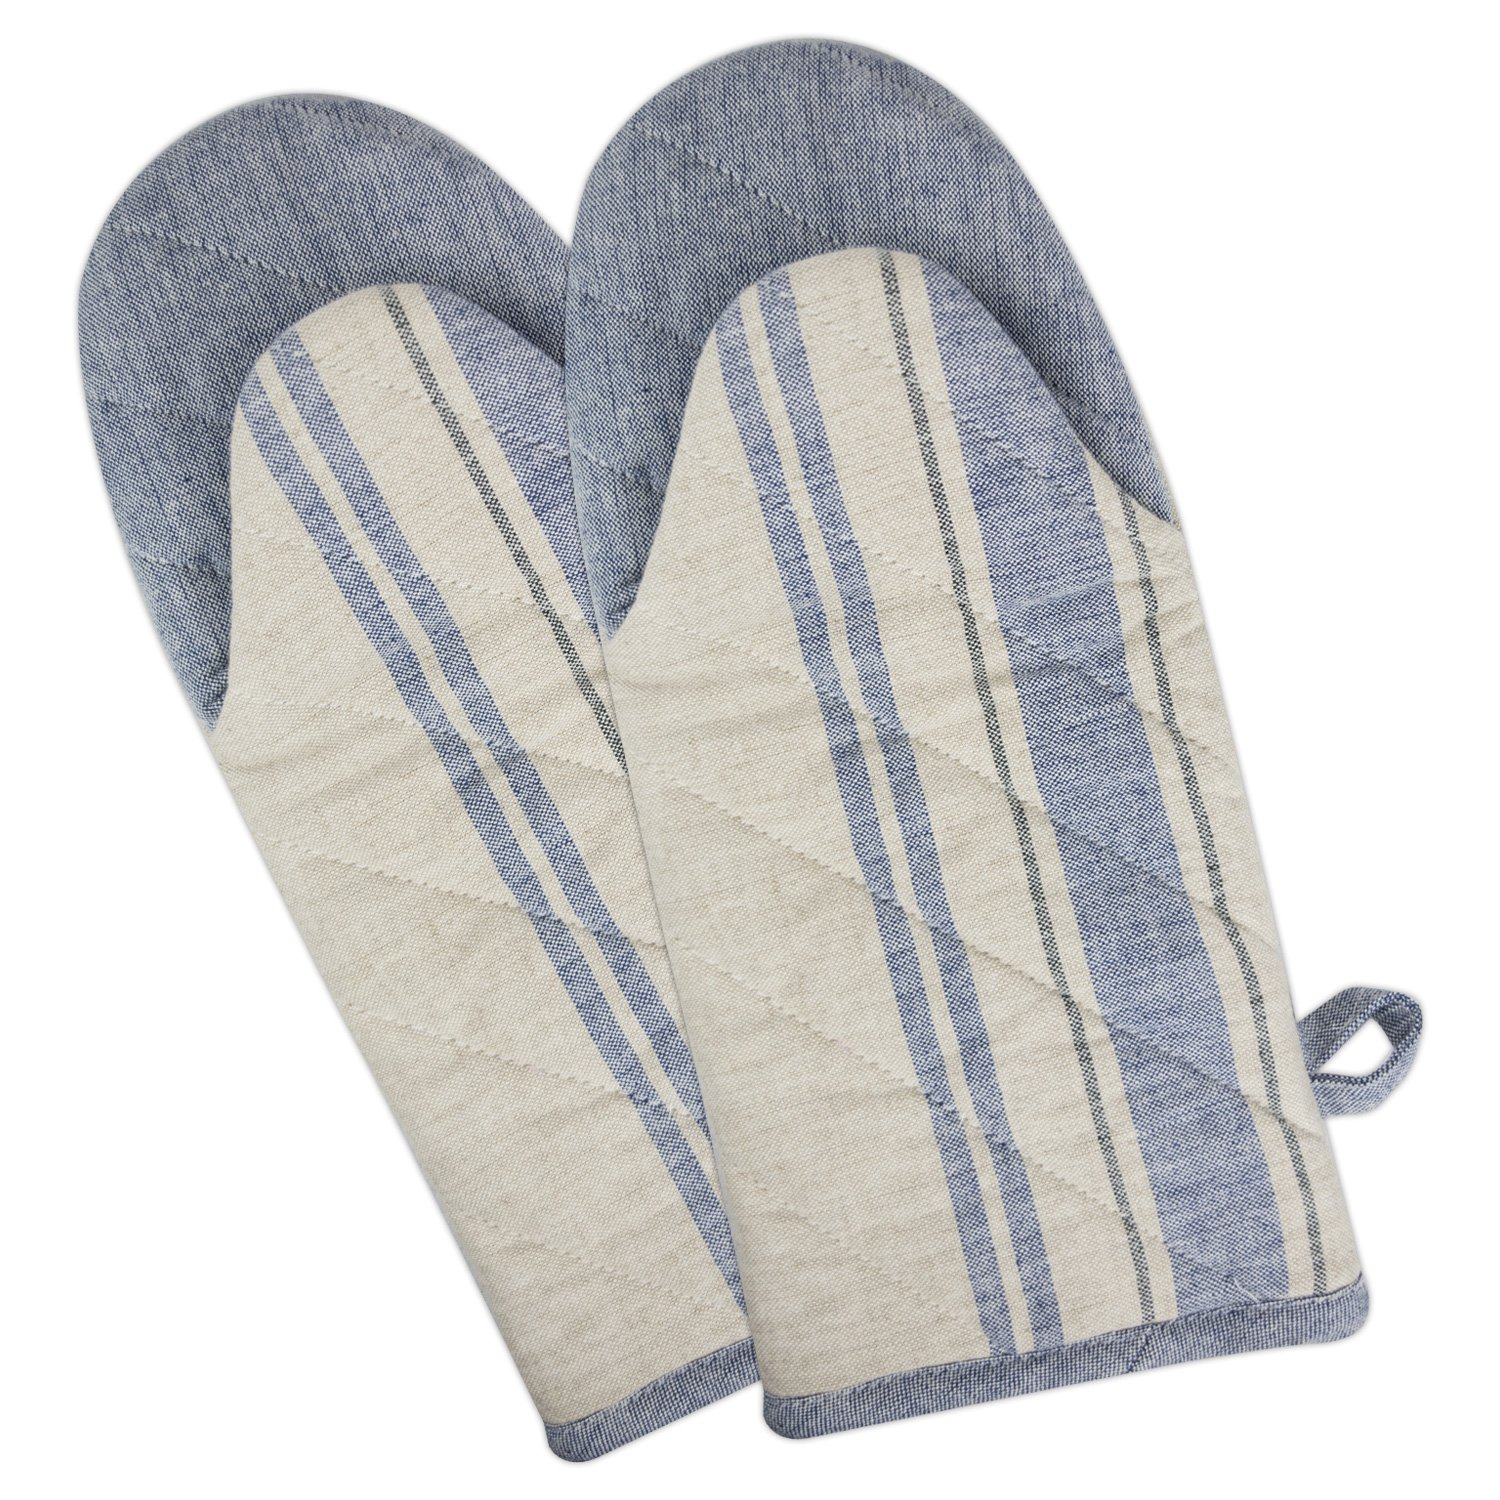 "DII Cotton French Stripe Oven Mitt, 13x6"" Set of 2, Machine Washable and Heat Resistant Country Farmhouse Cooking and Baking Glove-Nautical Blue"